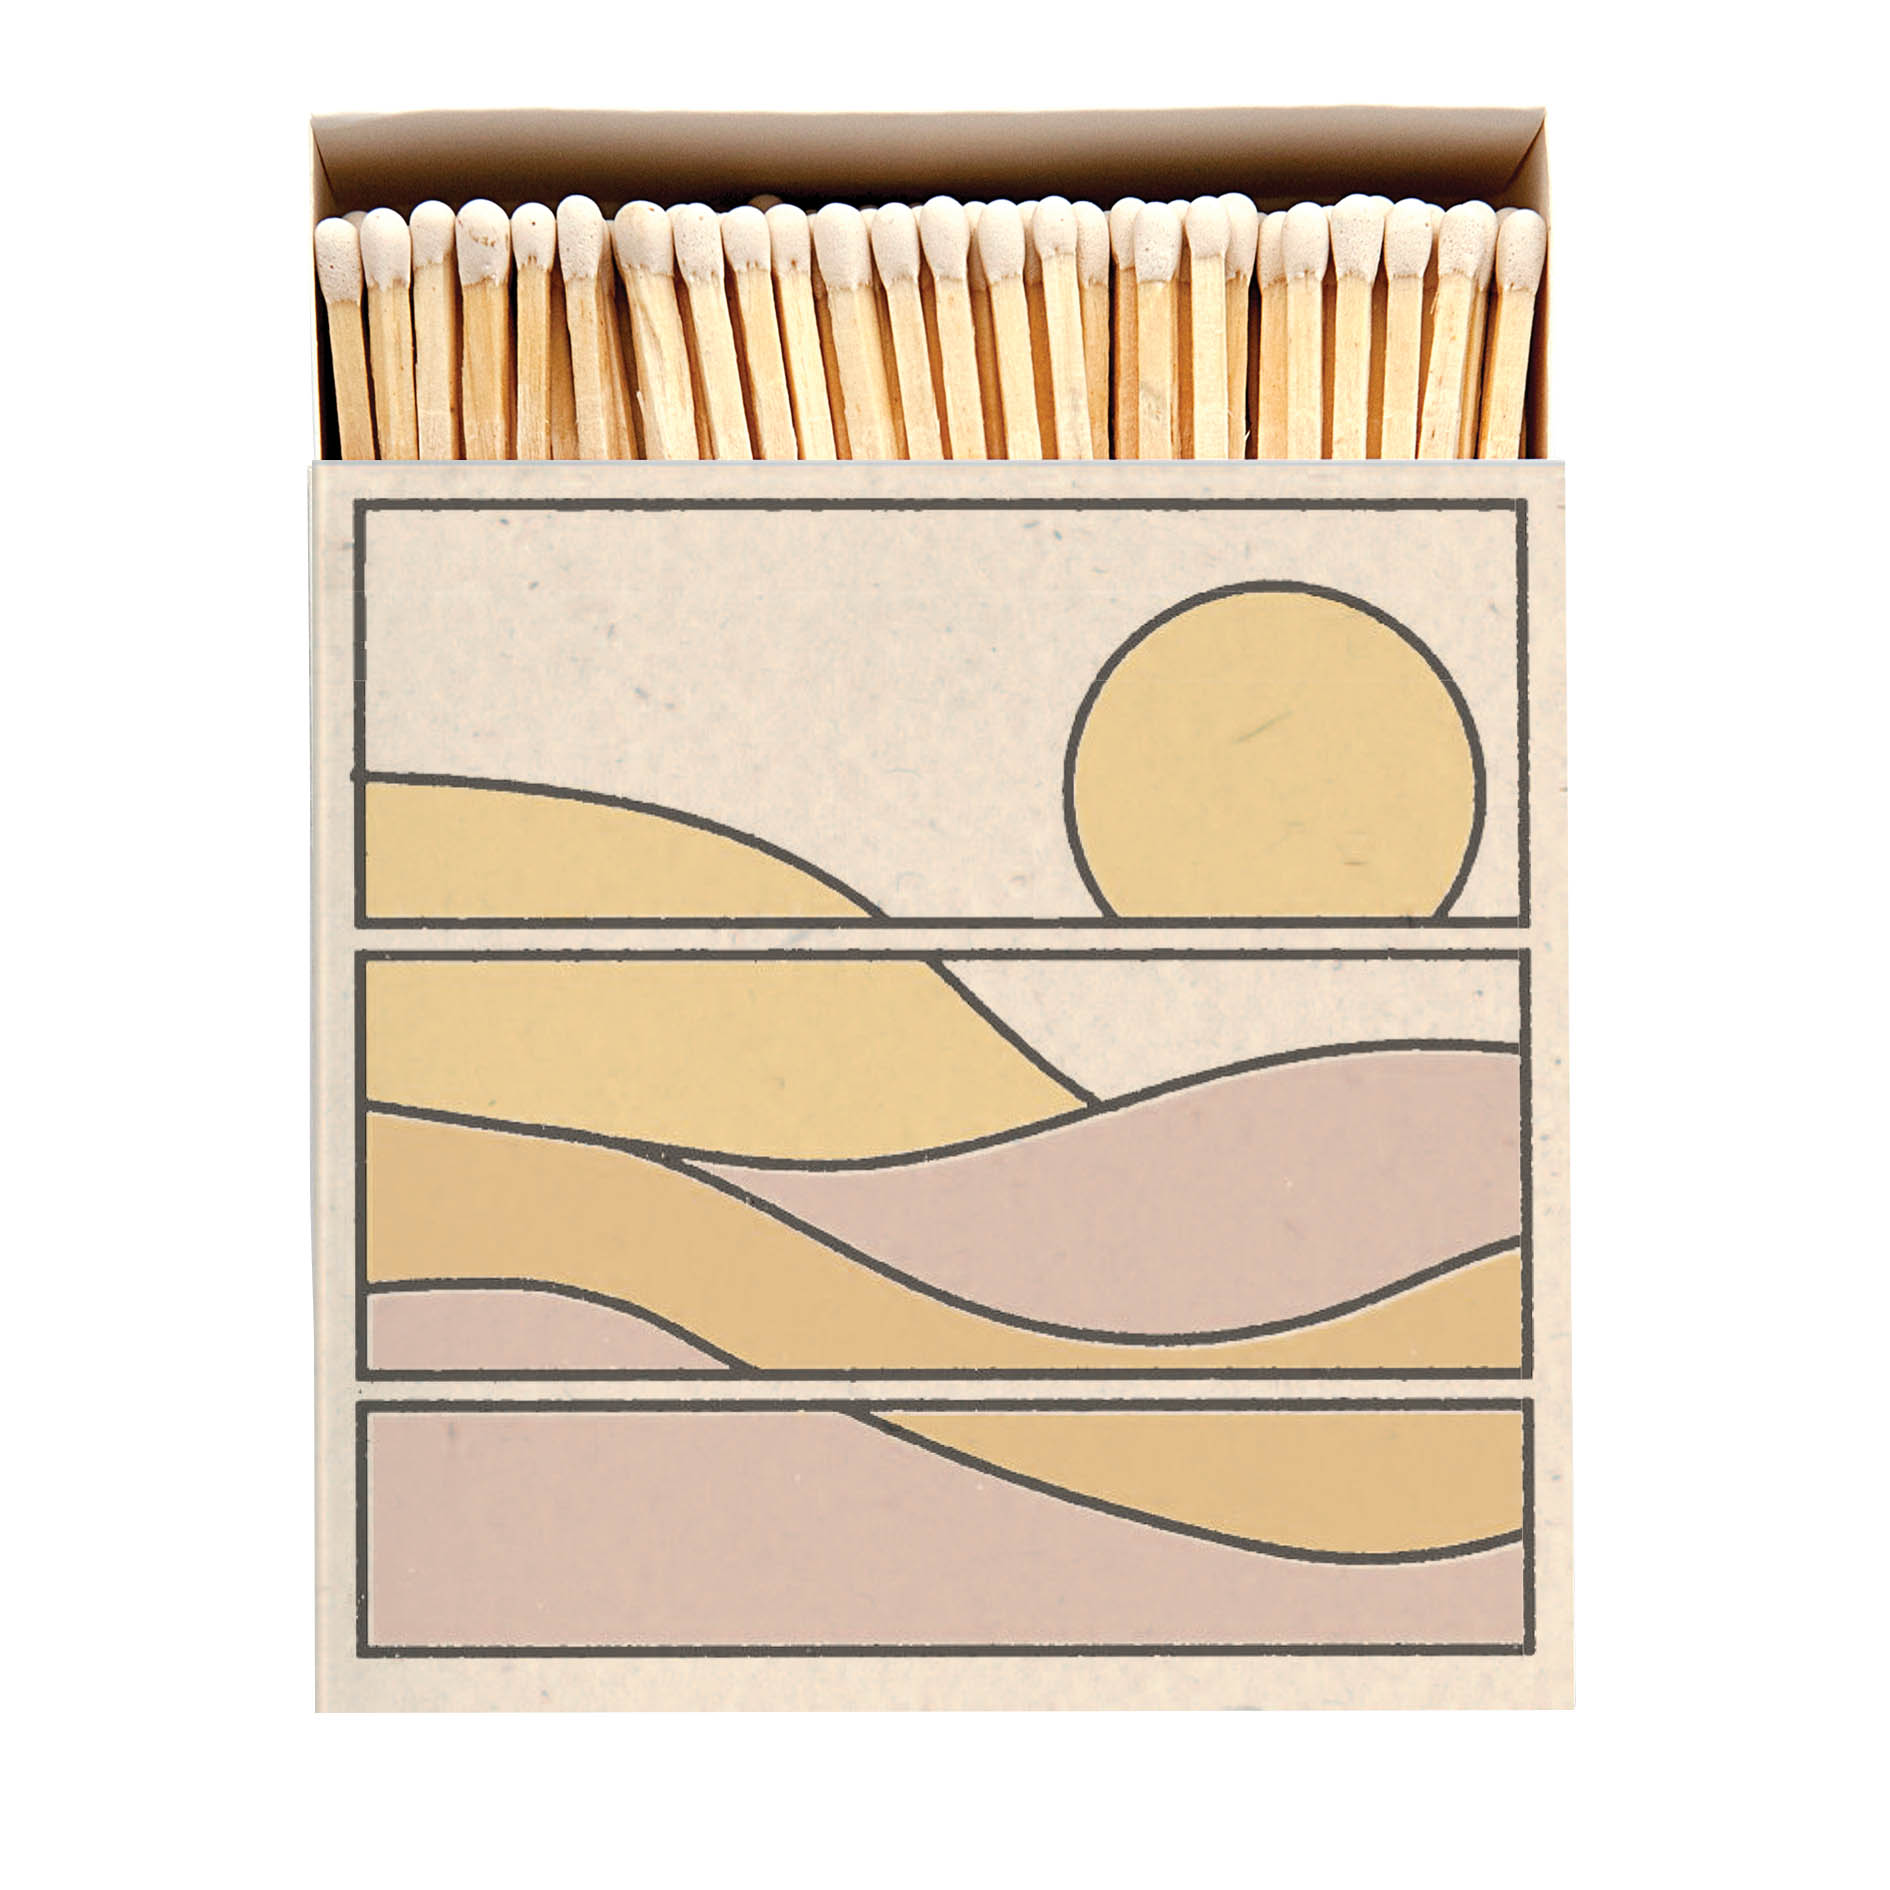 Archivist Landscape Match box